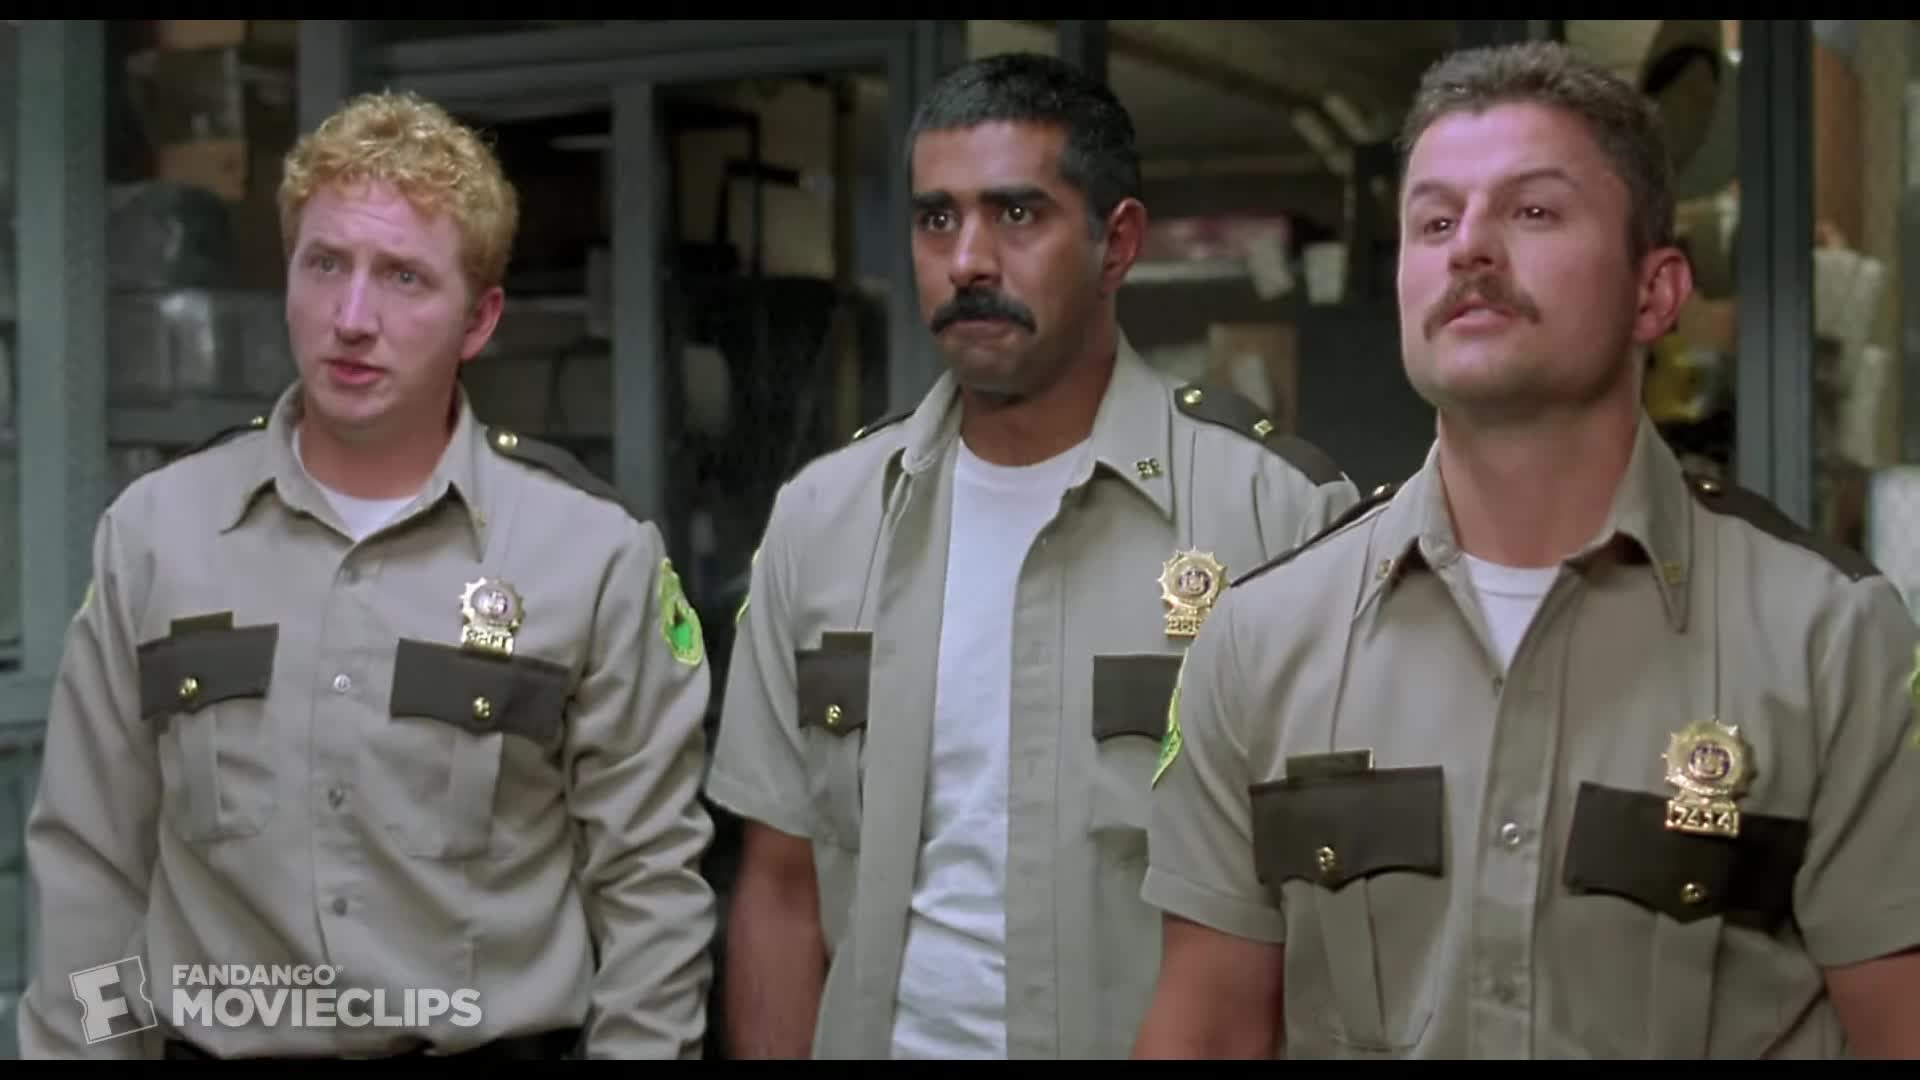 comedy, indie comedies, integrity videos, jonathan shoemaker, rabbit, super troopers, super troopers 2, super troopers meow, super troopers trailer, william rotko, Super Troopers (5/5) Movie CLIP - Shenanigans (2001) HD GIFs